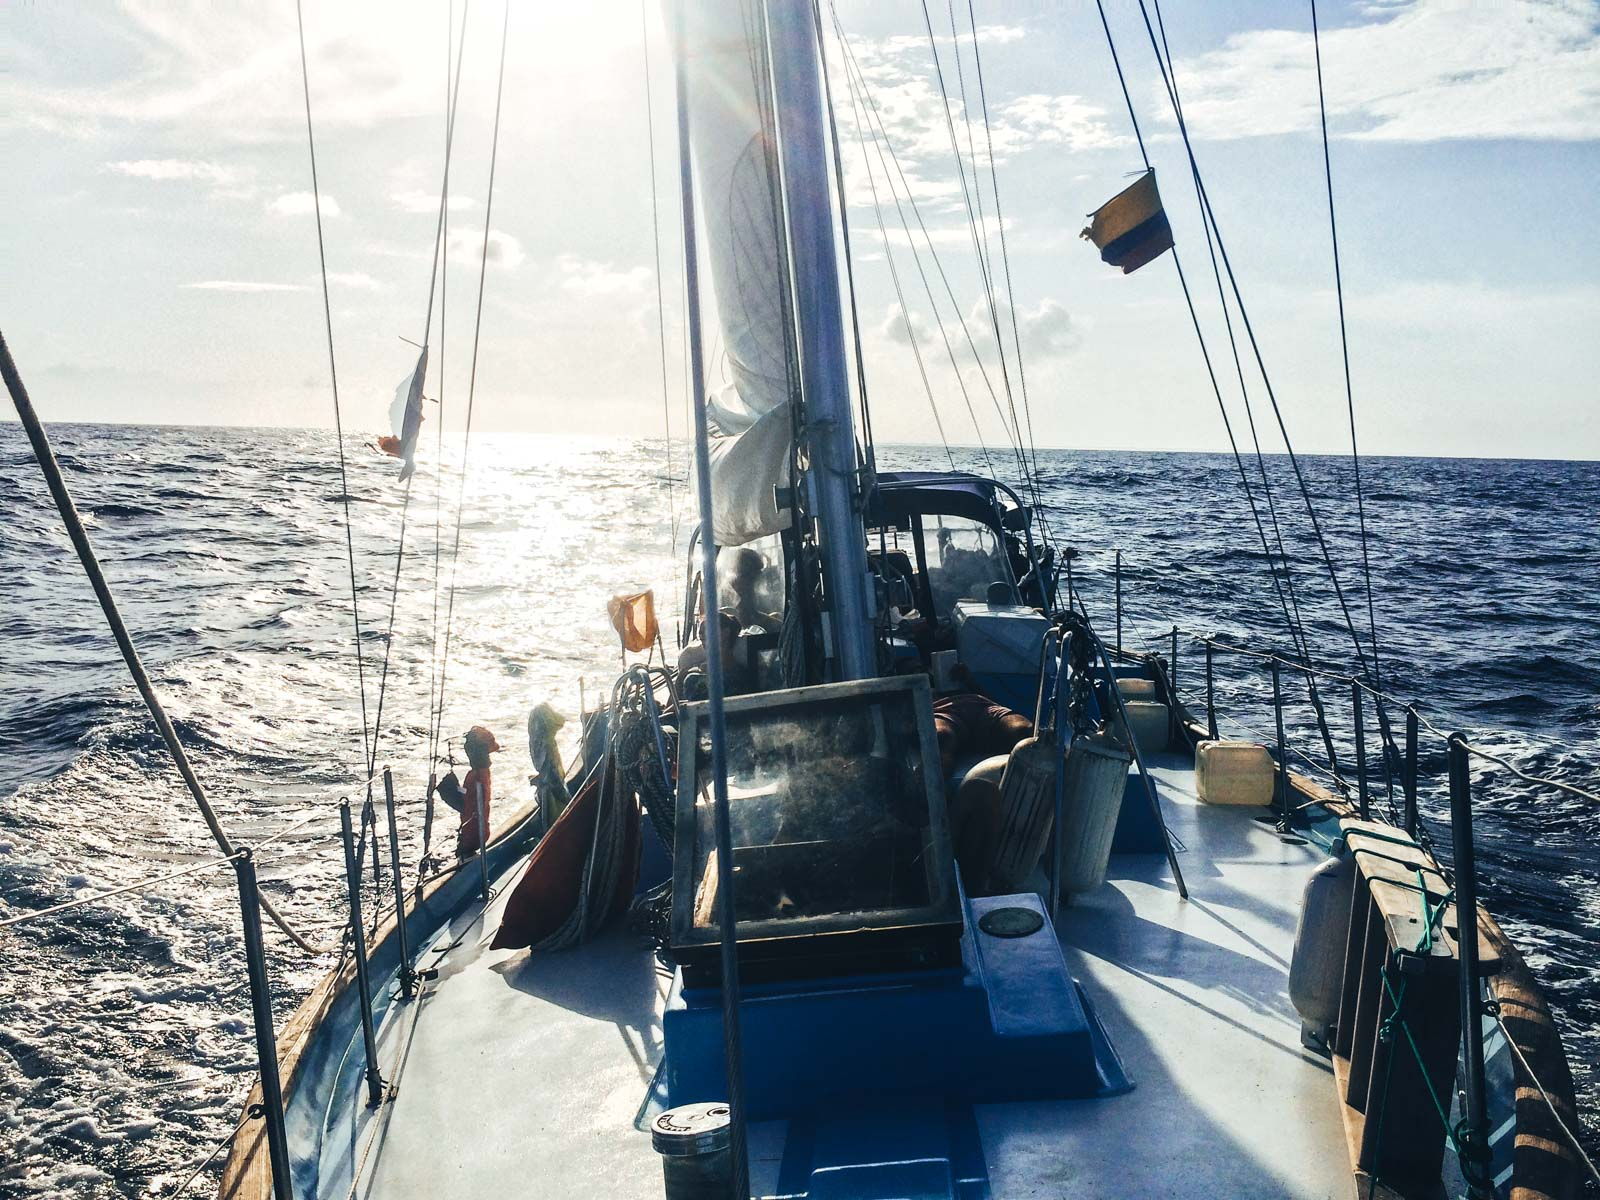 Sailing San Blas Islands the epic 5 day sea adventure. The Koala 2 boat out on the open ocean with a view of the mast and back of the boat